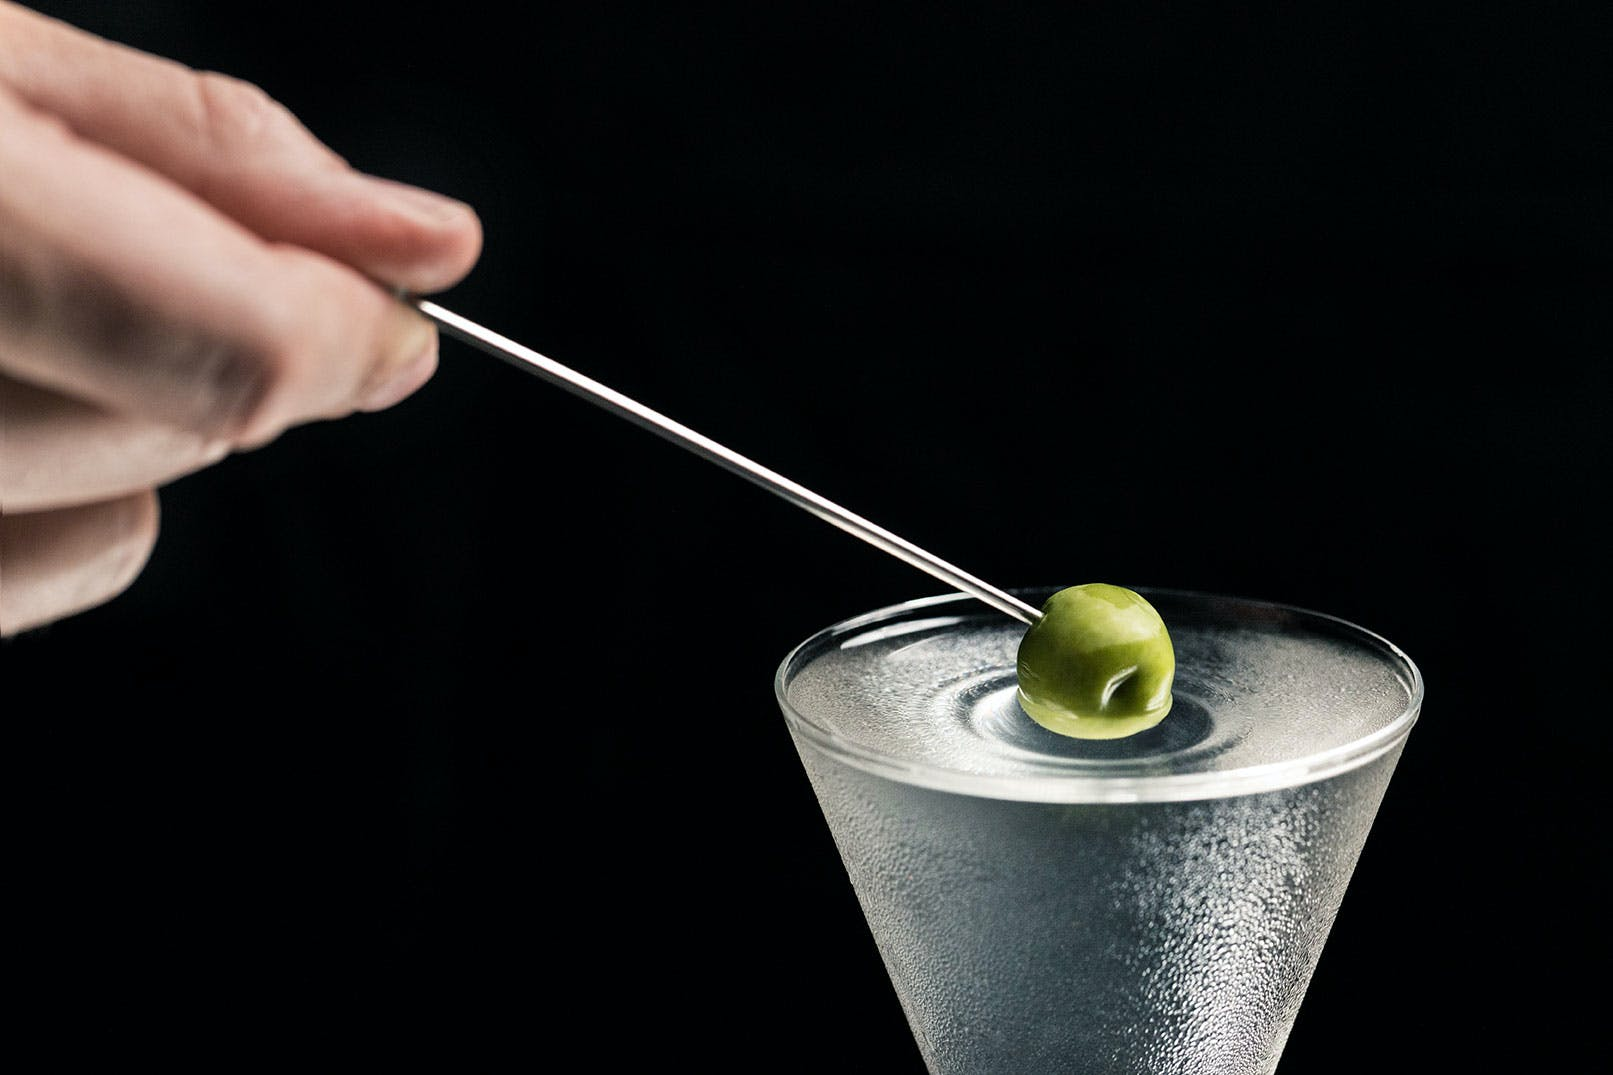 a hand holding an olive over a martini